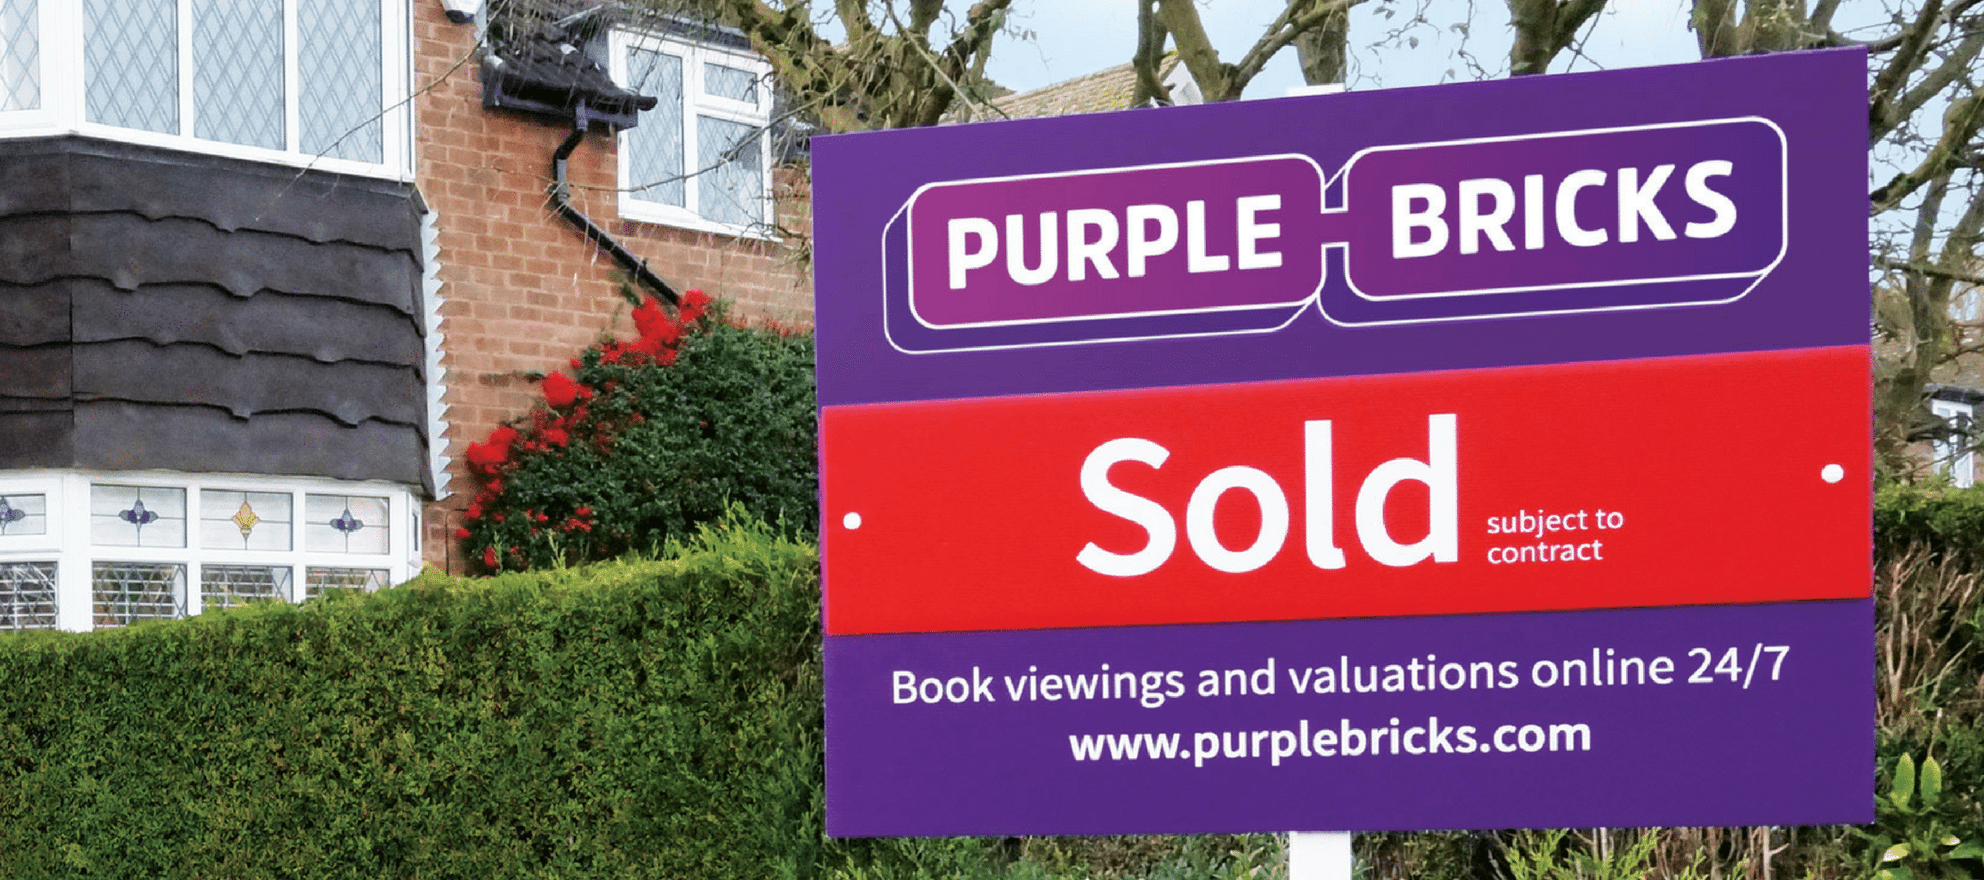 Purplebricks expands into Canada through acquisition